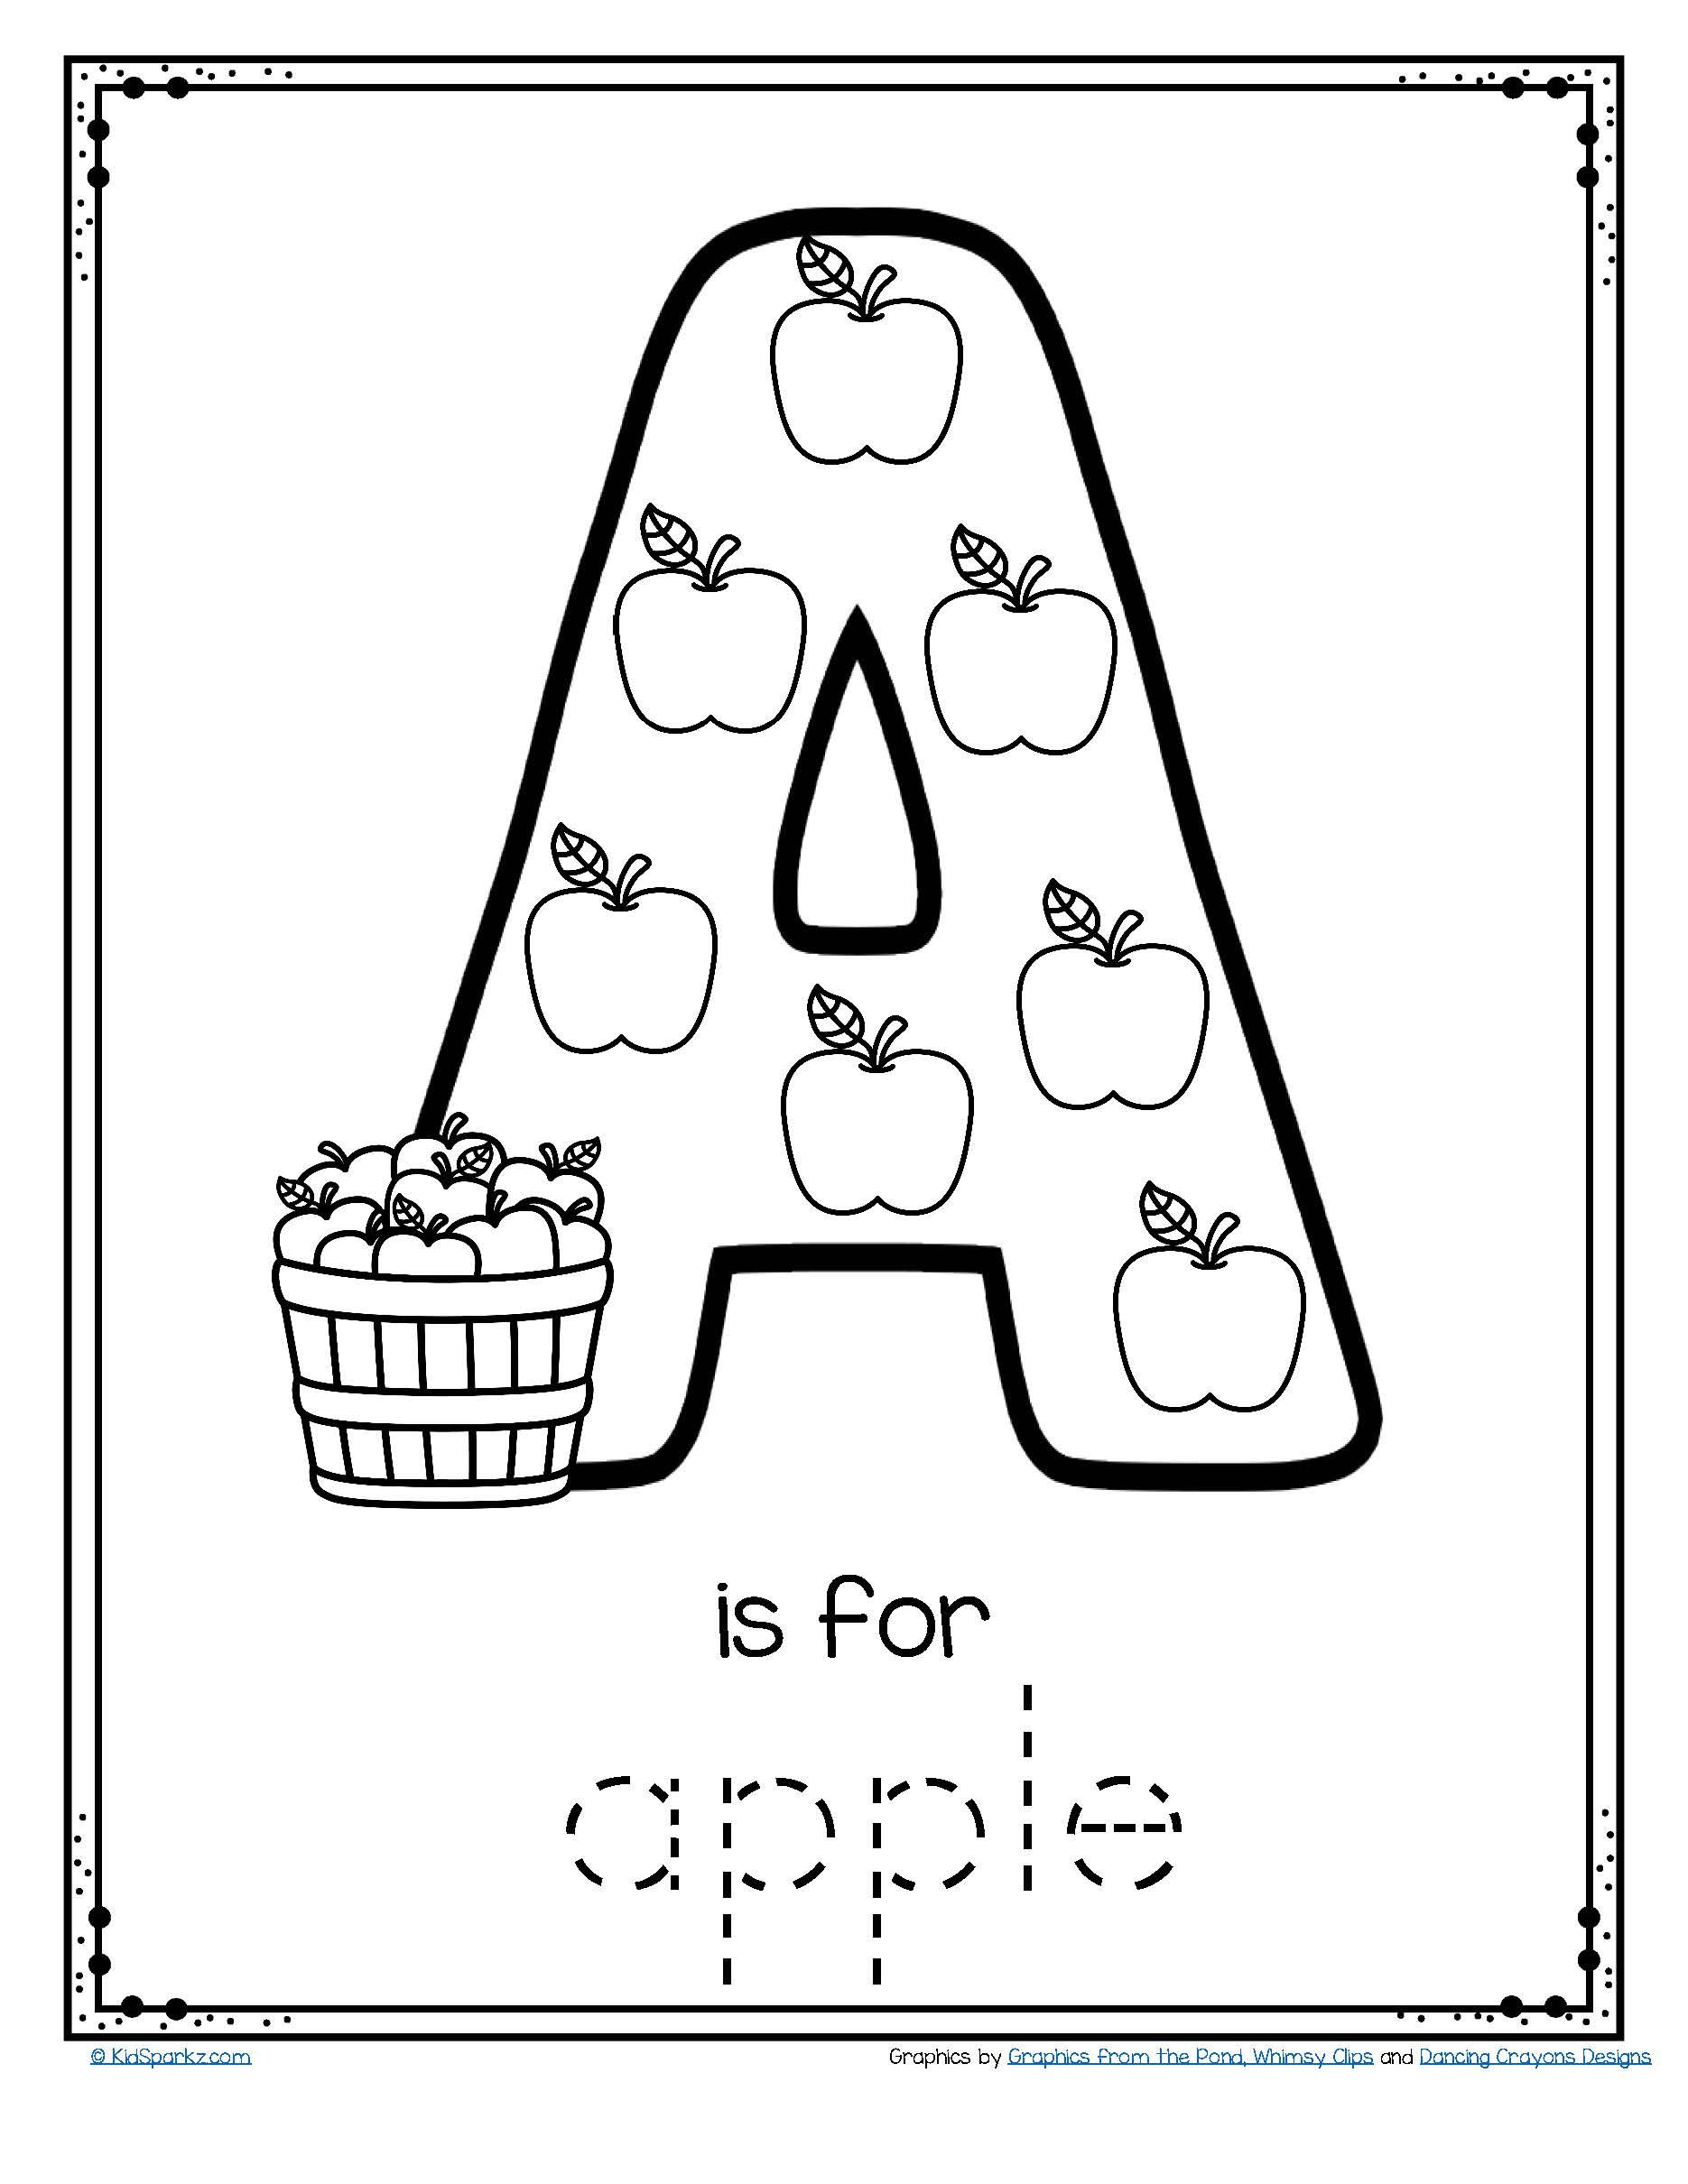 Letter A Is For Apple - Trace And Color Printable Free intended for Letter A Worksheets Preschool Free